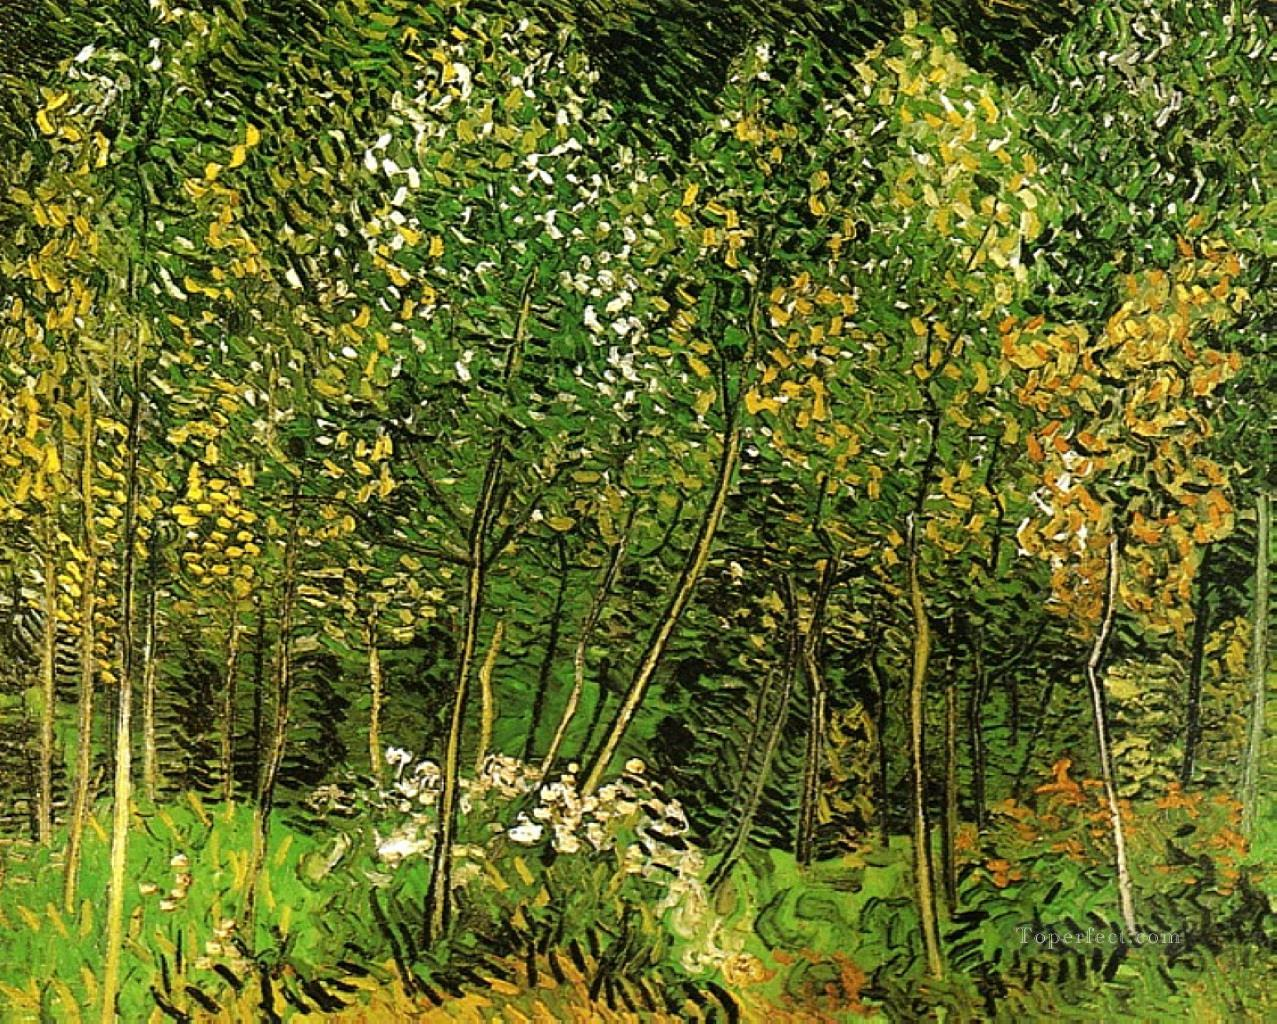 5 The Grove Vincent van Gogh